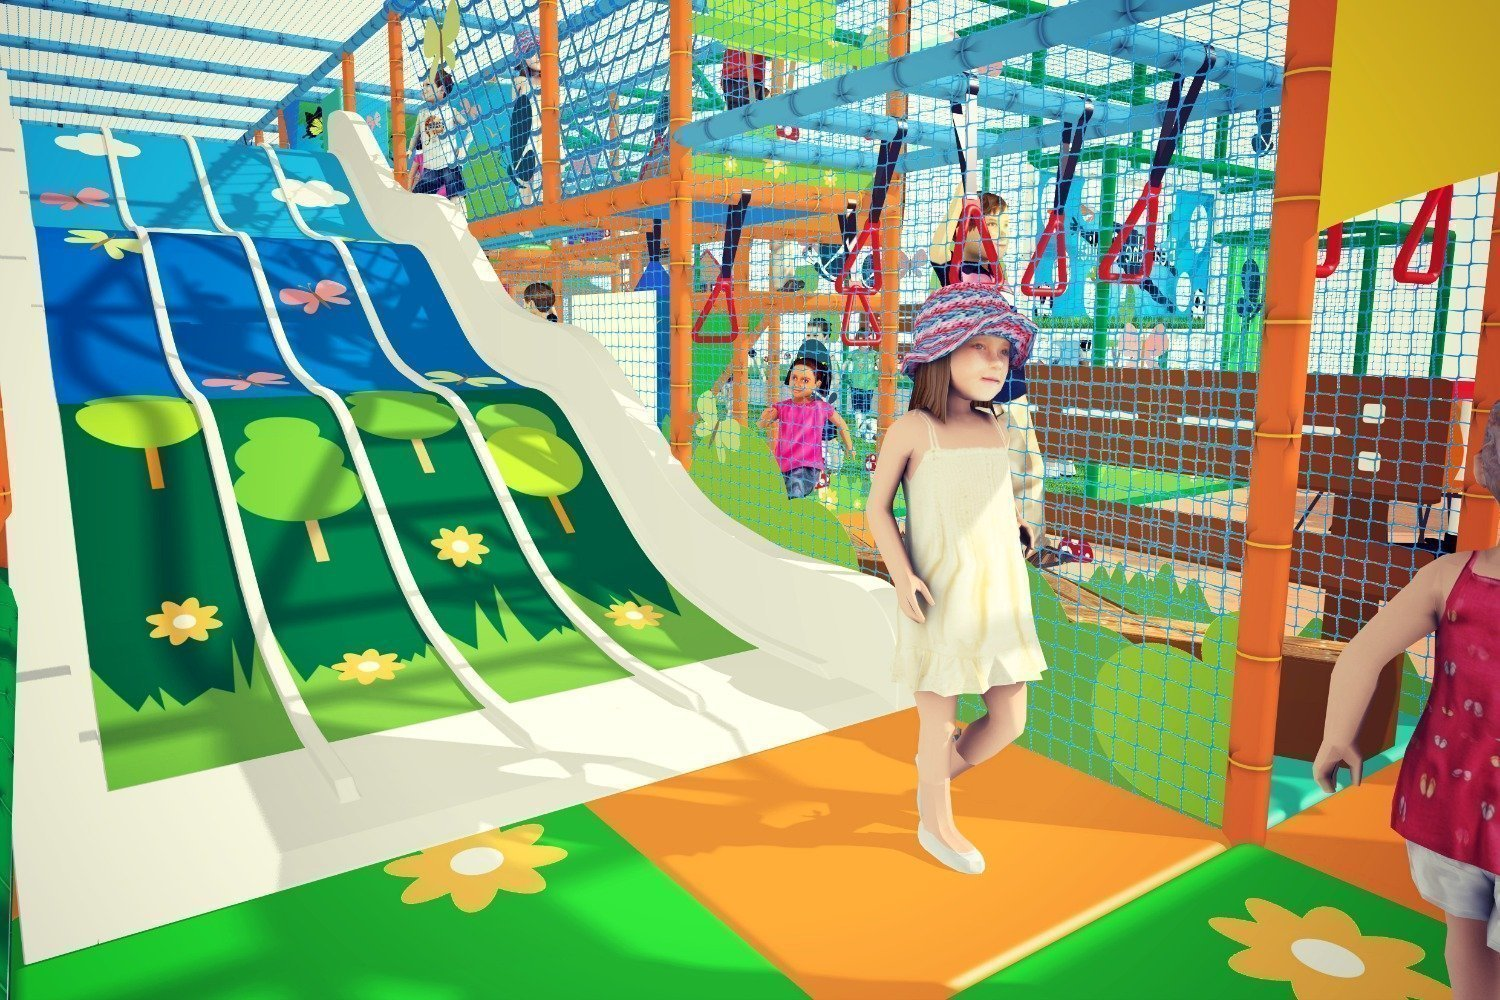 CONFIRMED OPENING DATE FOR THE RAINBOW LEISURE CENTRE PLAY CENTRE